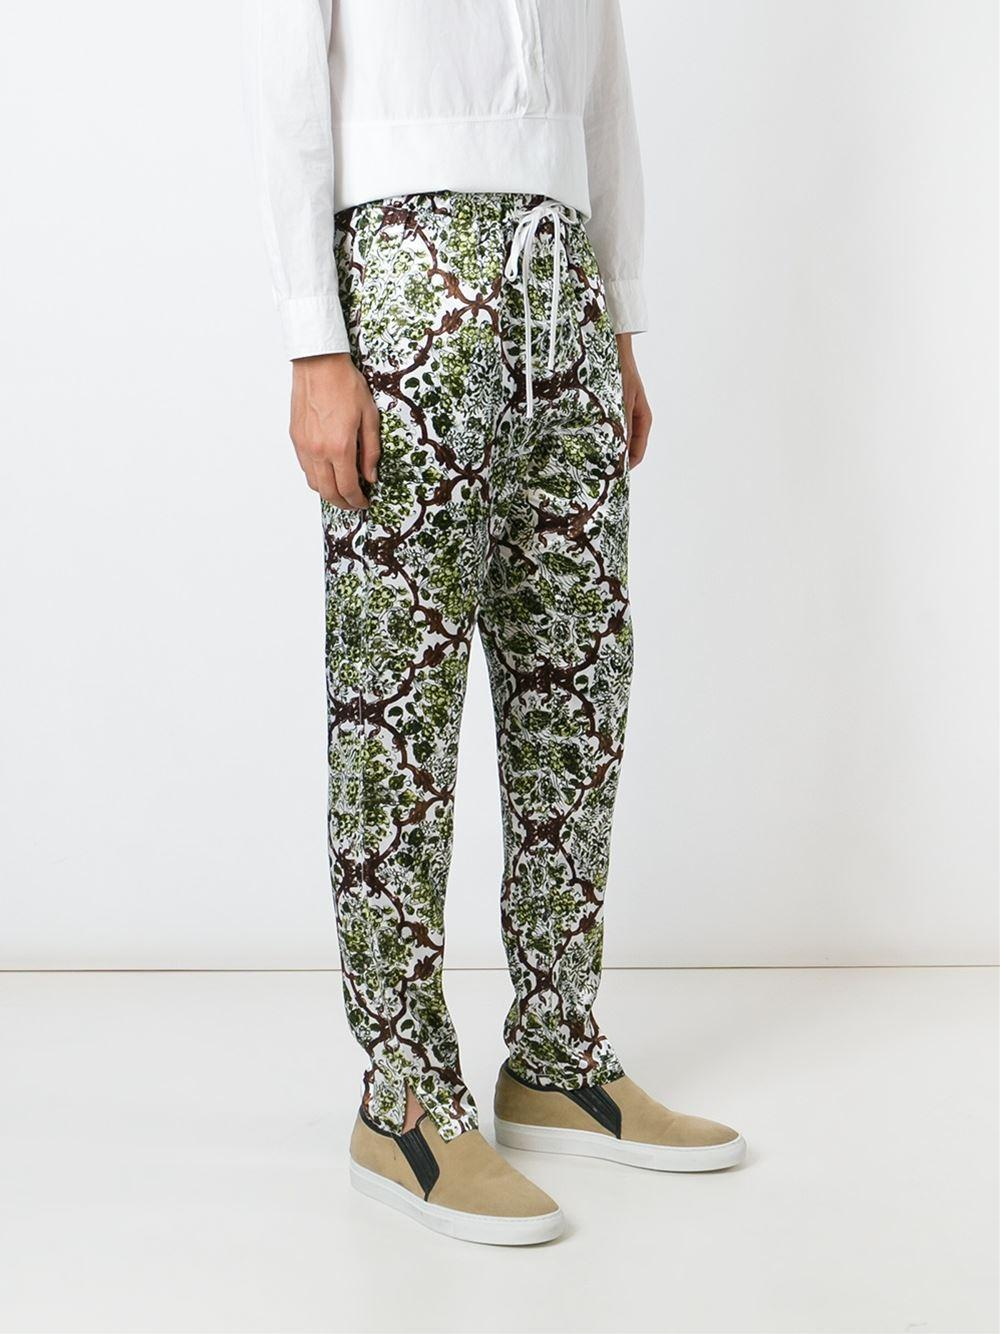 3.1 Phillip Lim Baroque Print Trousers in Green for Men